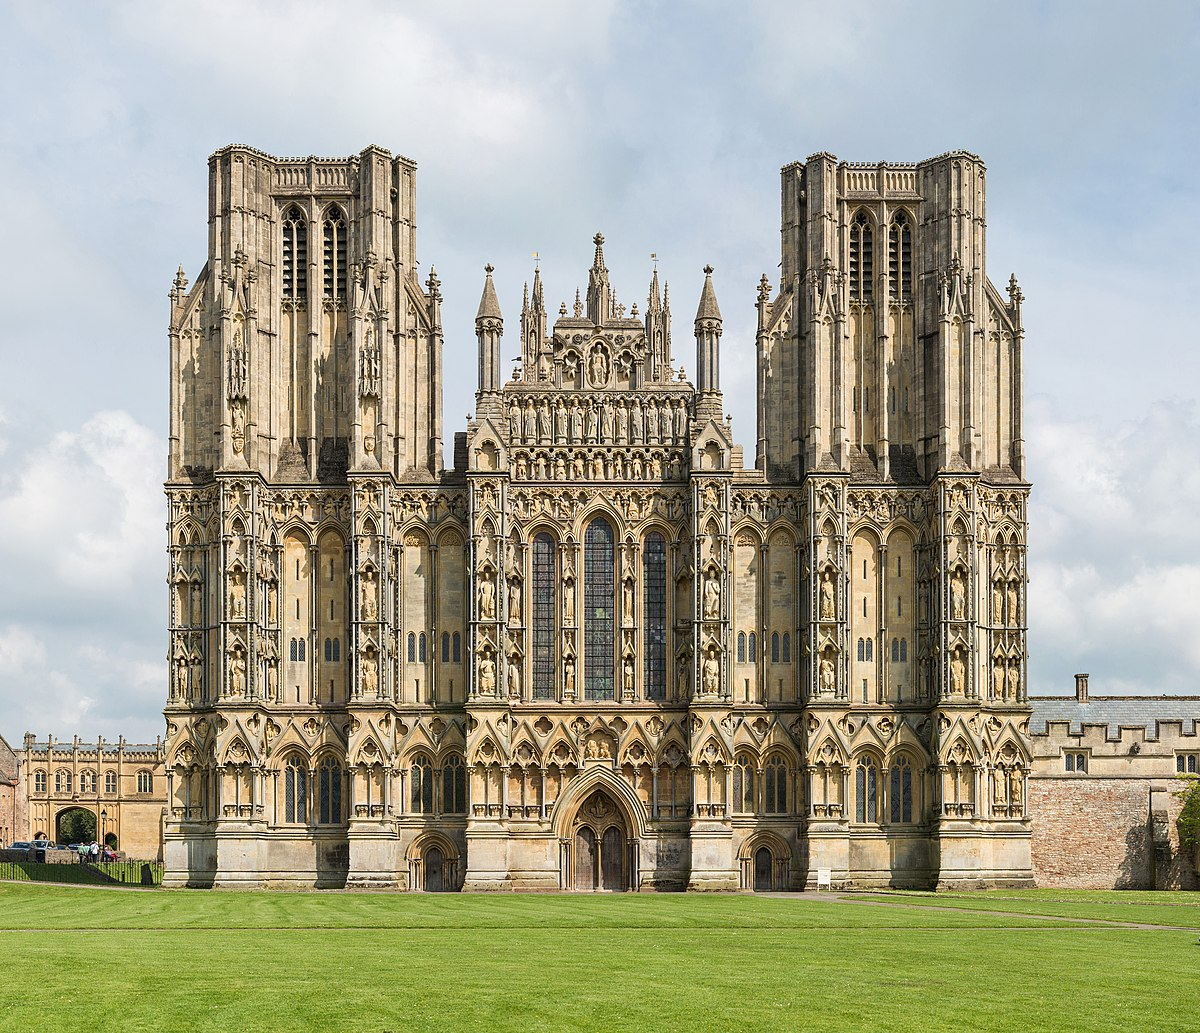 Well's Contemporary Art Exhibition - Wells Cathedral, Somerset from Saturday 28 August to Sunday 26 September